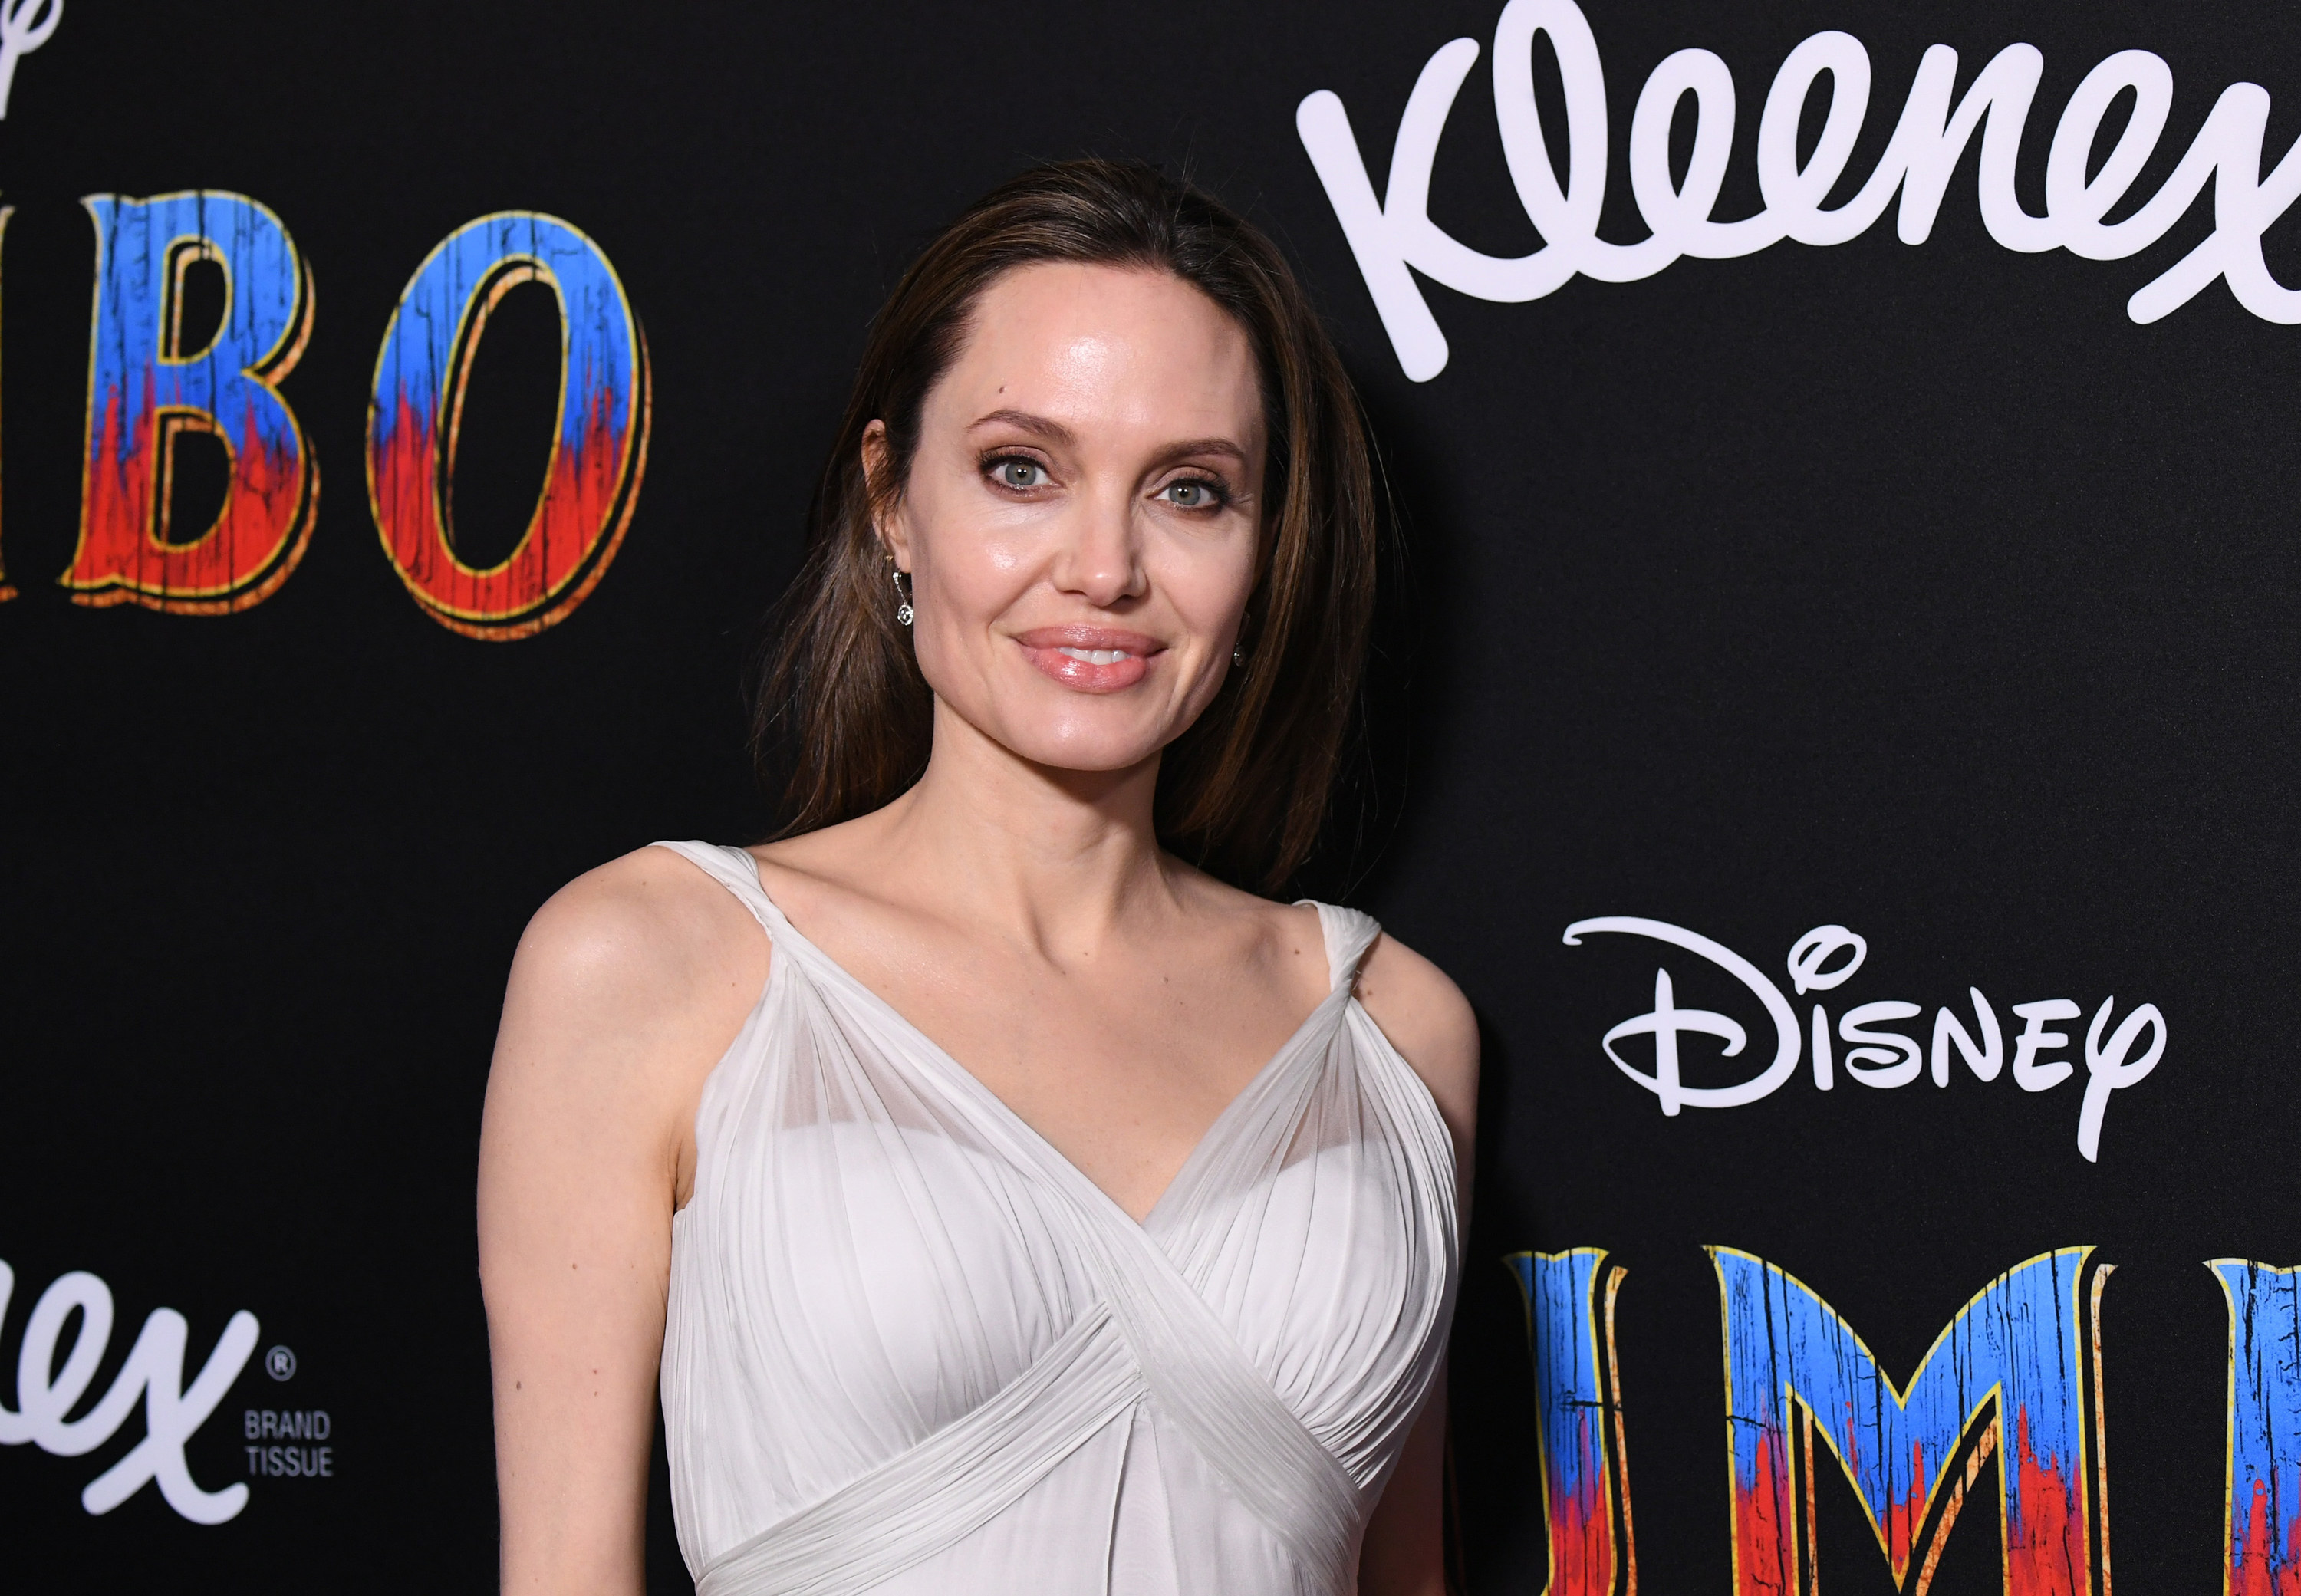 Angelina attends a premiere in a gown